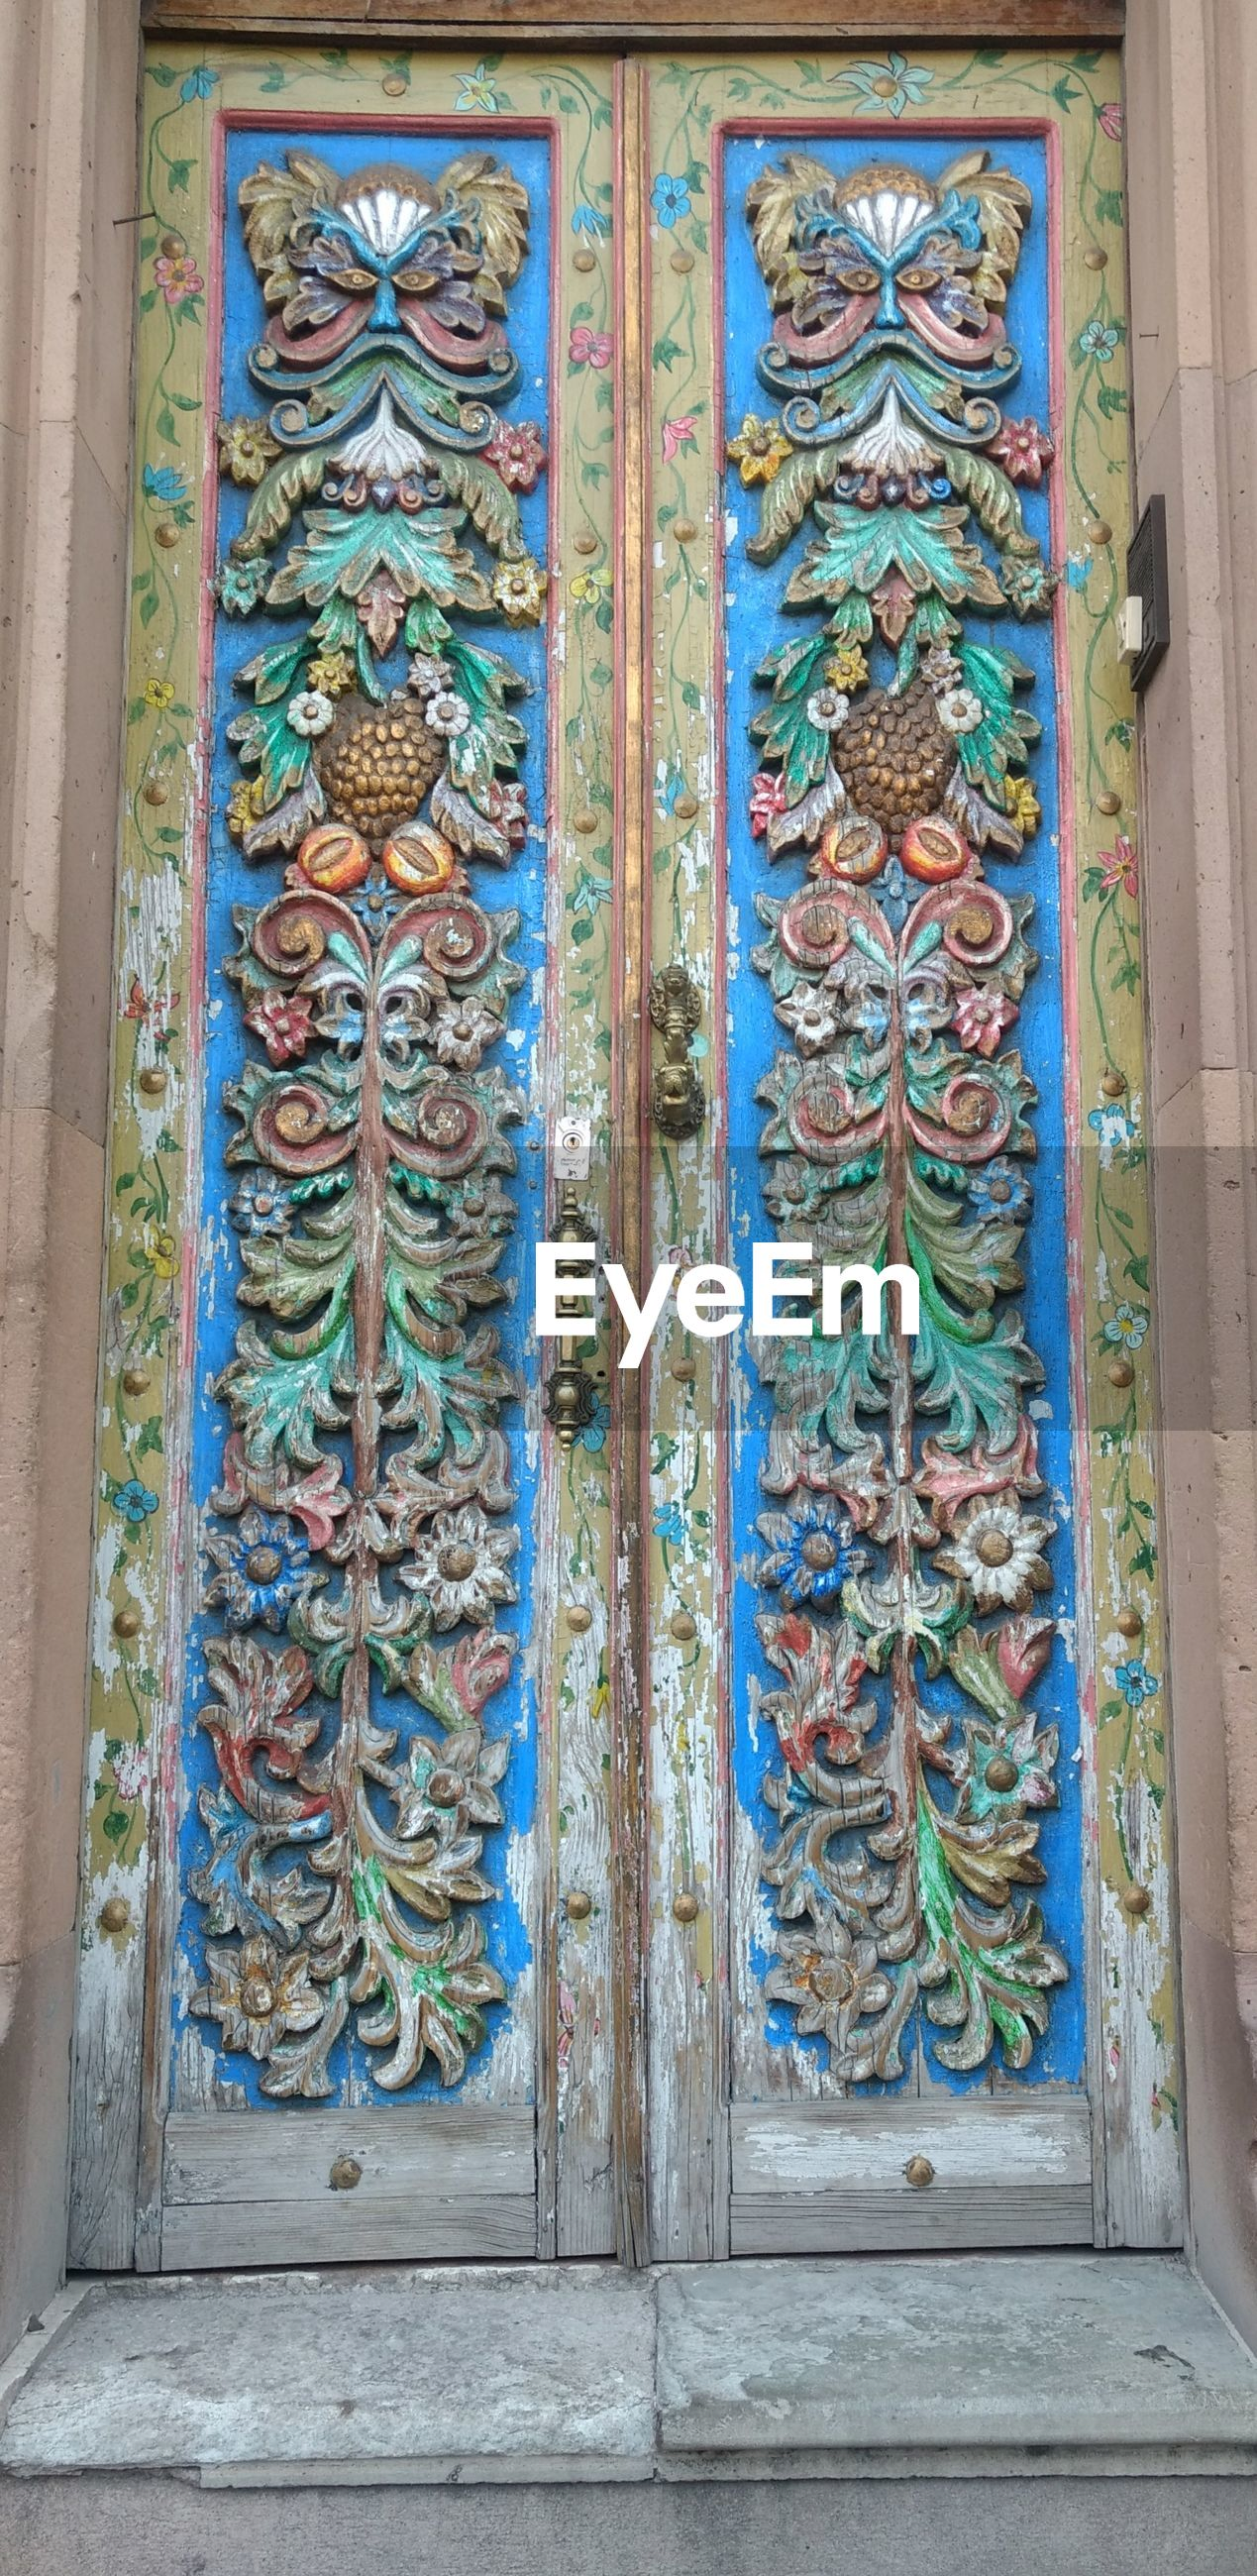 creativity, multi colored, art and craft, no people, architecture, door, day, window, place of worship, pattern, built structure, building exterior, decorative art, blue, outdoors, close-up